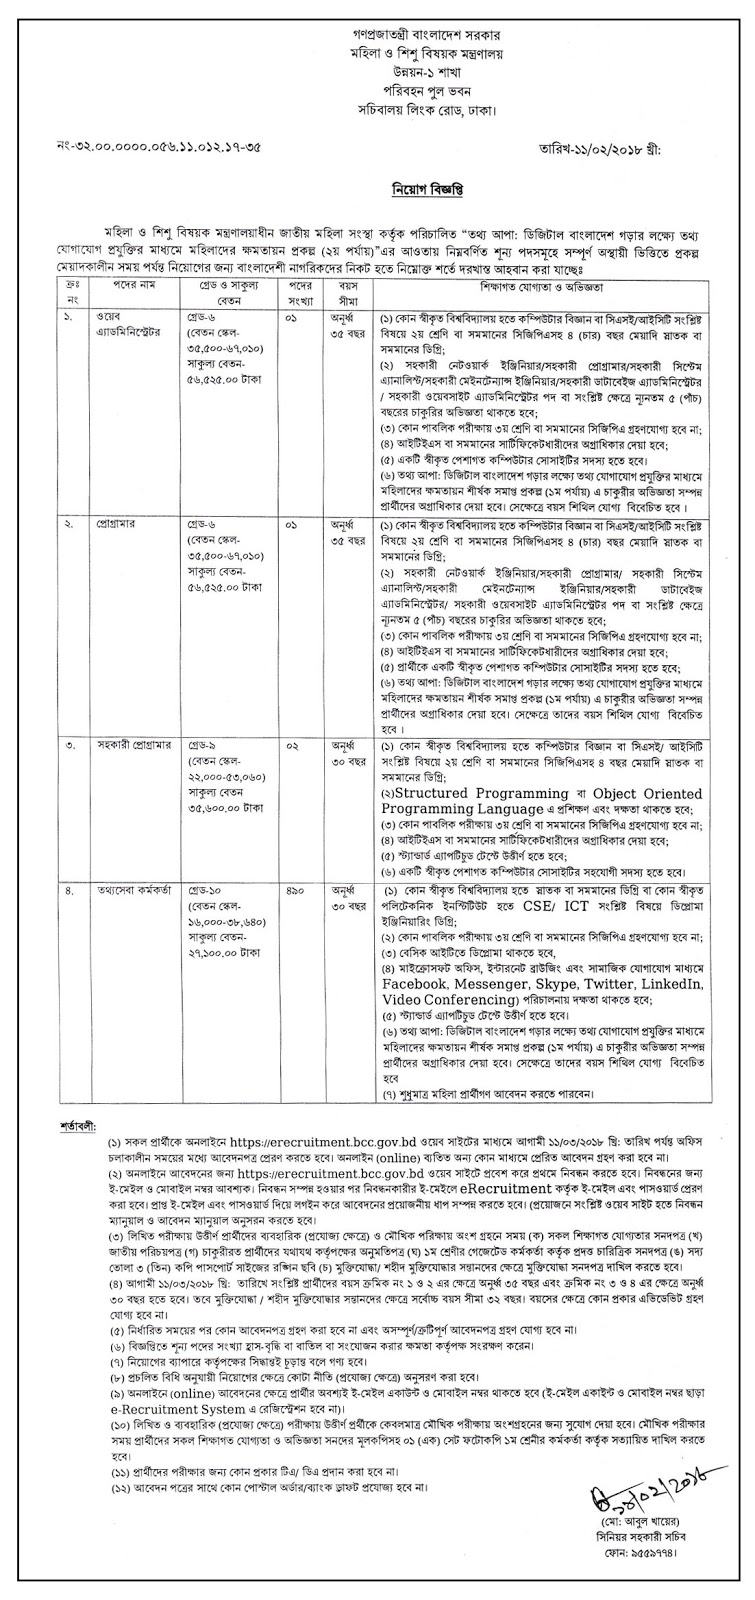 Career Opportunity at totthoapa Project 2018